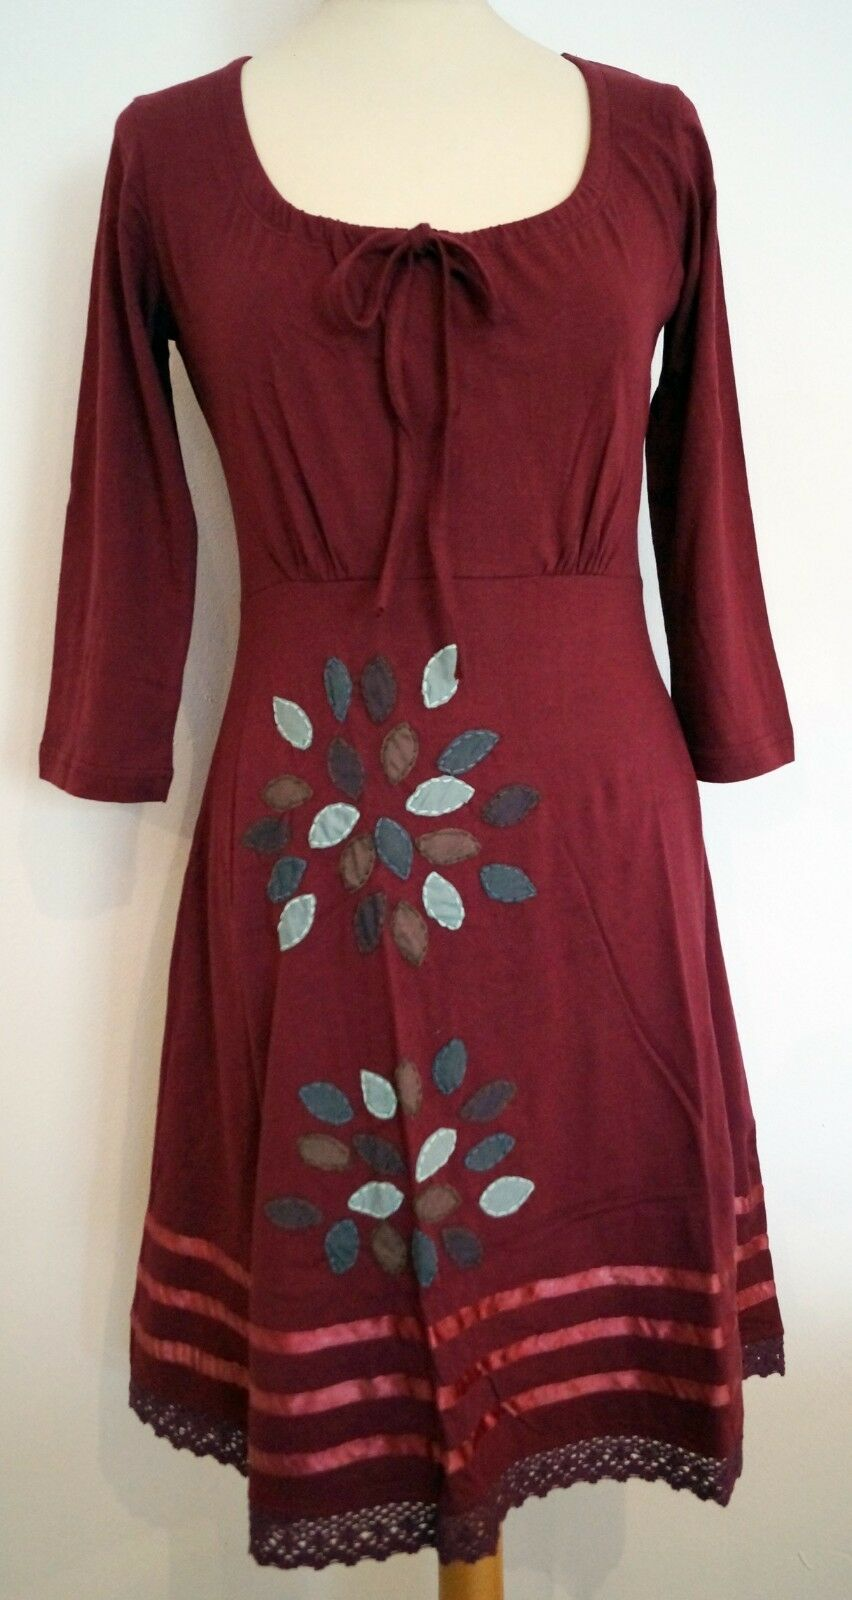 H053 Himalaya Dress Got Cotton Jersey Embroidered Appliqué Fairtrade XXL